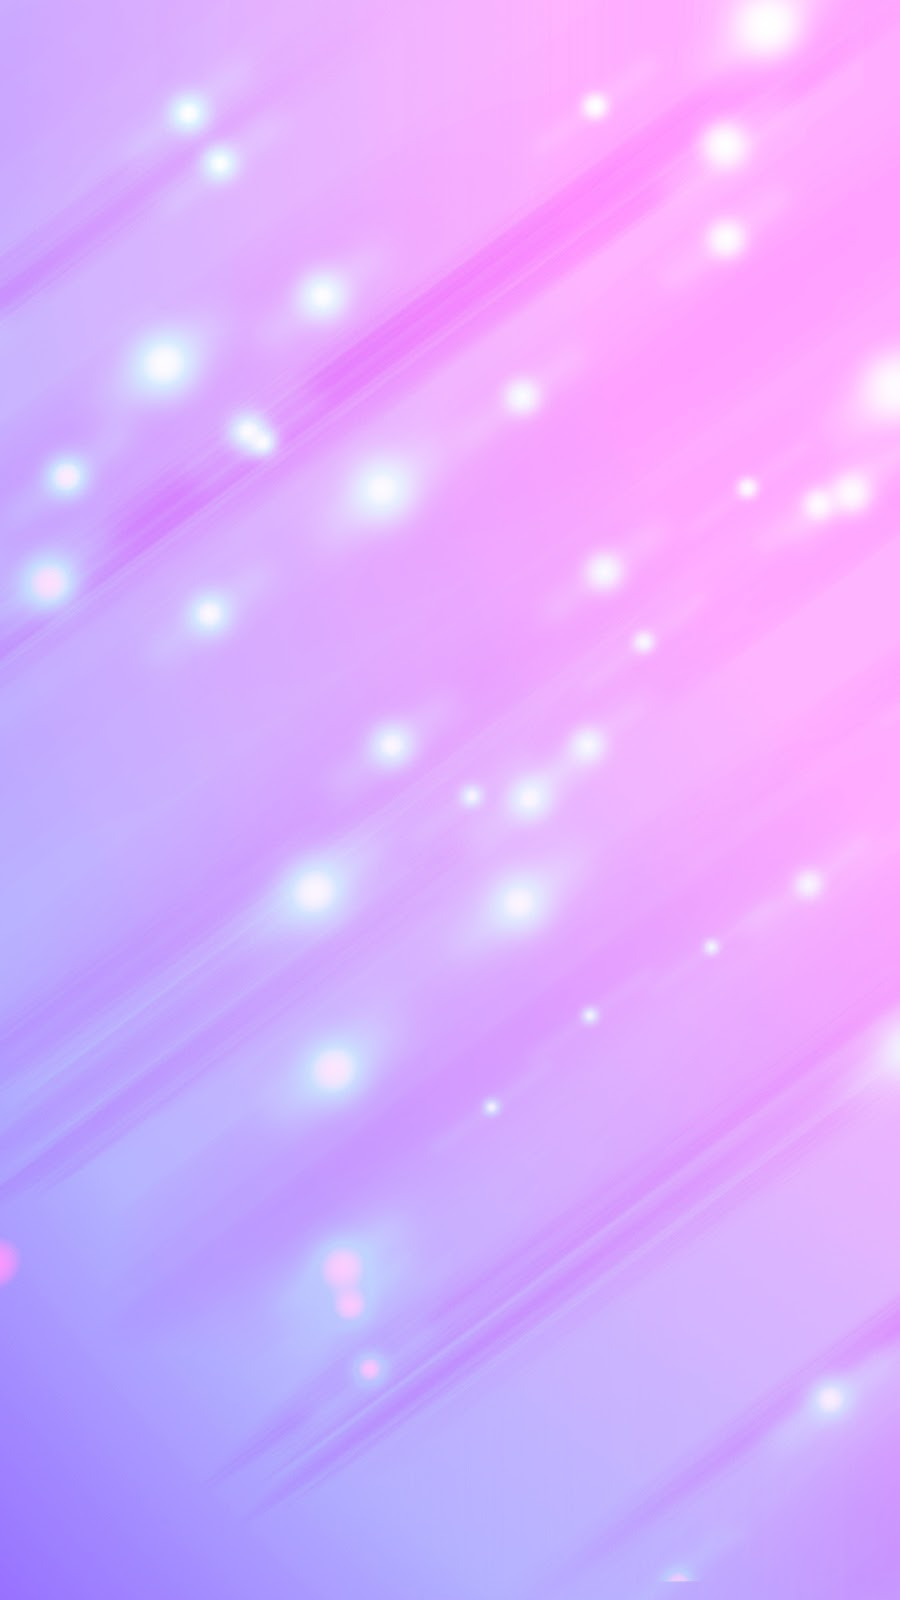 Light Pink Wallpaper For Iphone 6 Plus Galleryimage.co